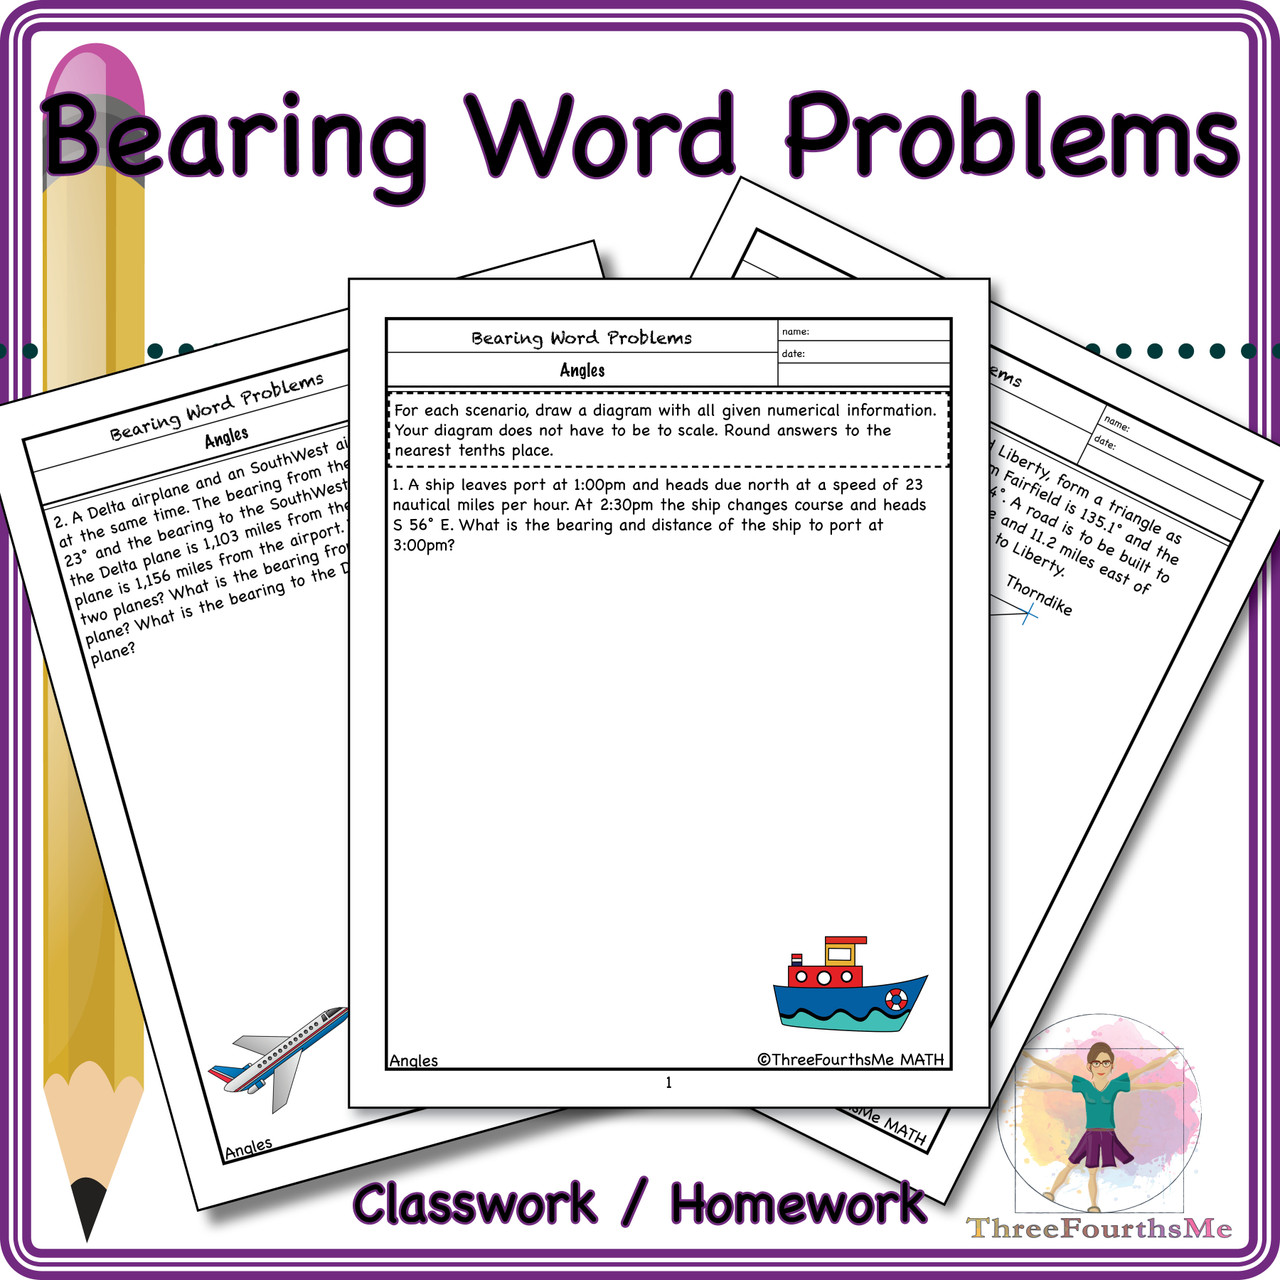 10 Bearing Word Problems